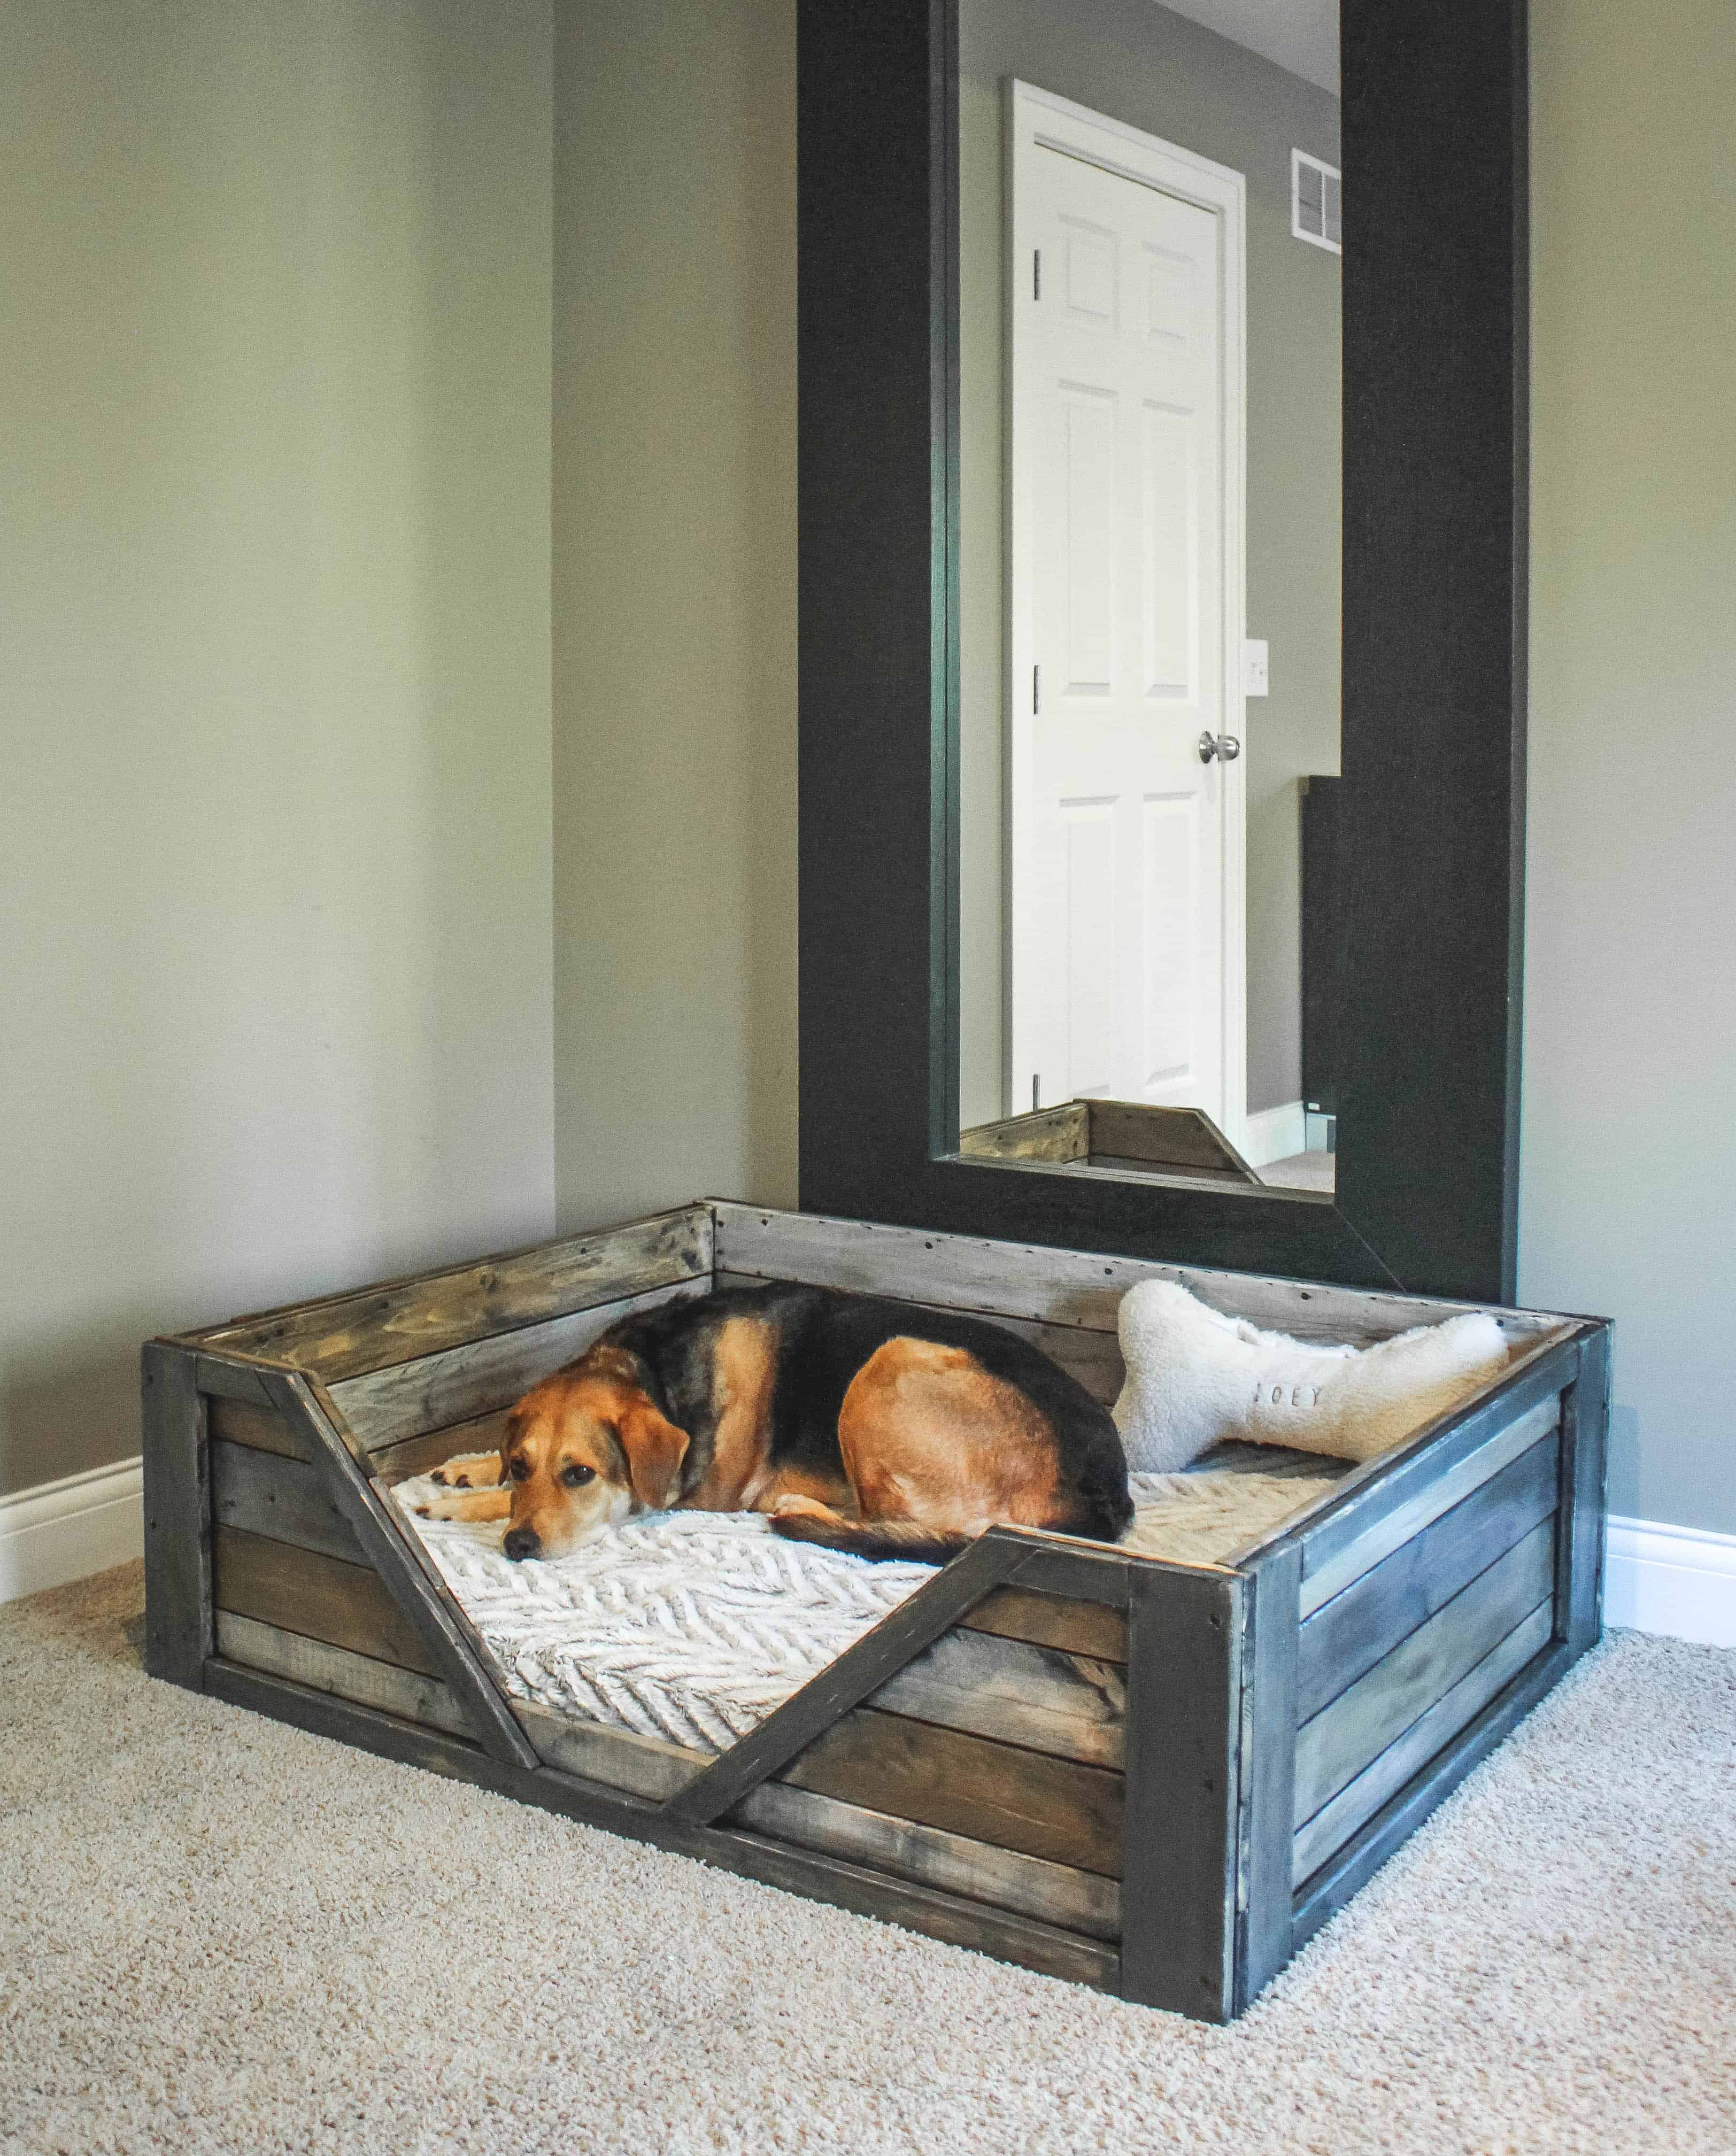 Superb Recycled pallet bed frames for your home hometshetics